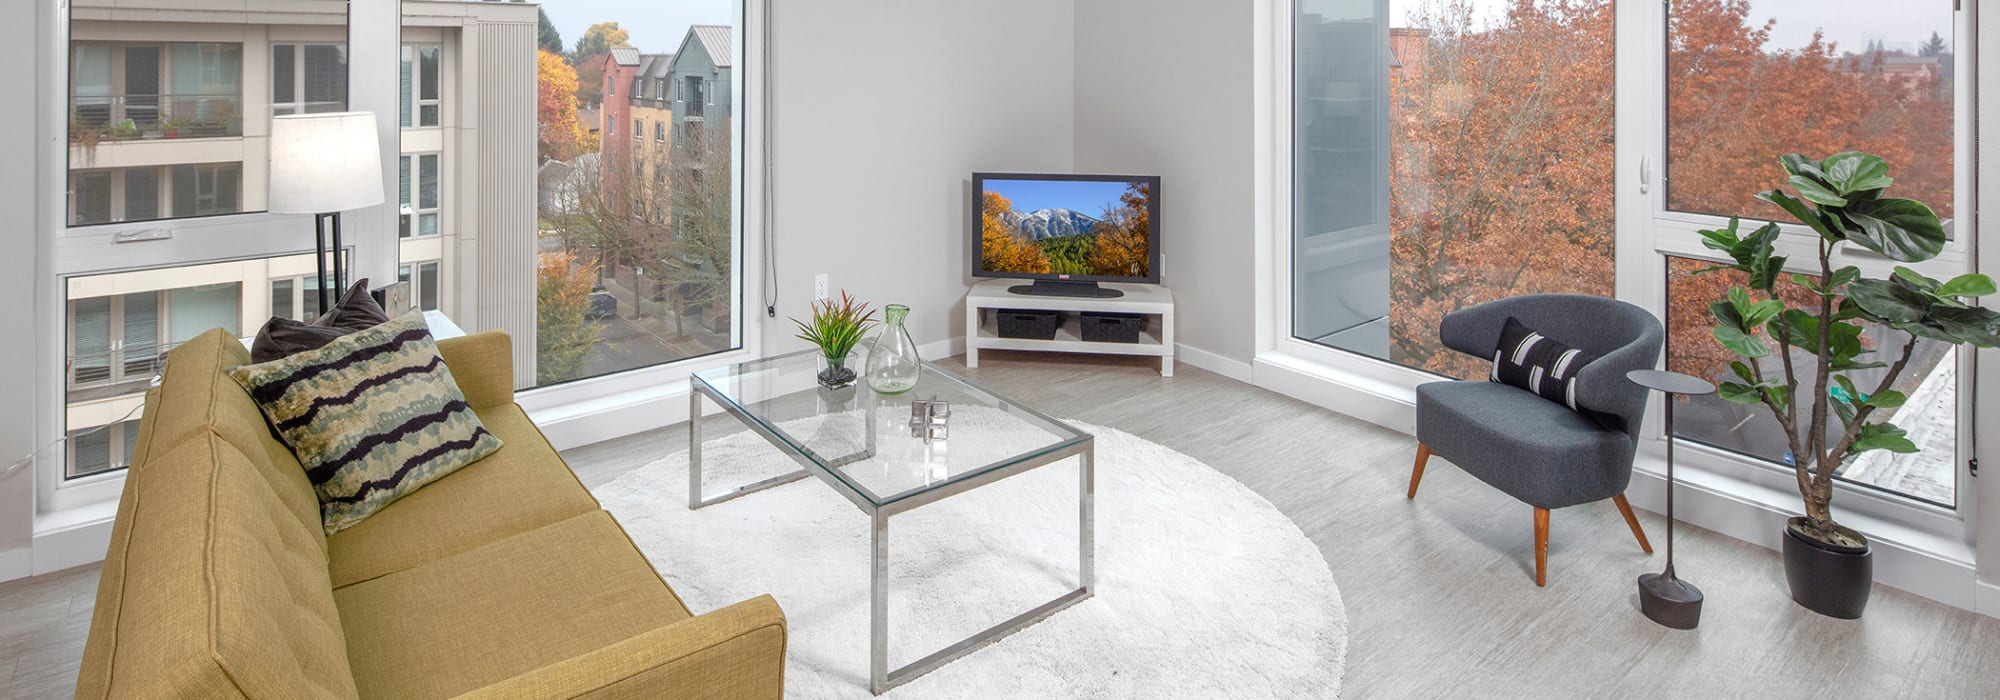 Contact us at Division Terrace in Portland, Oregon